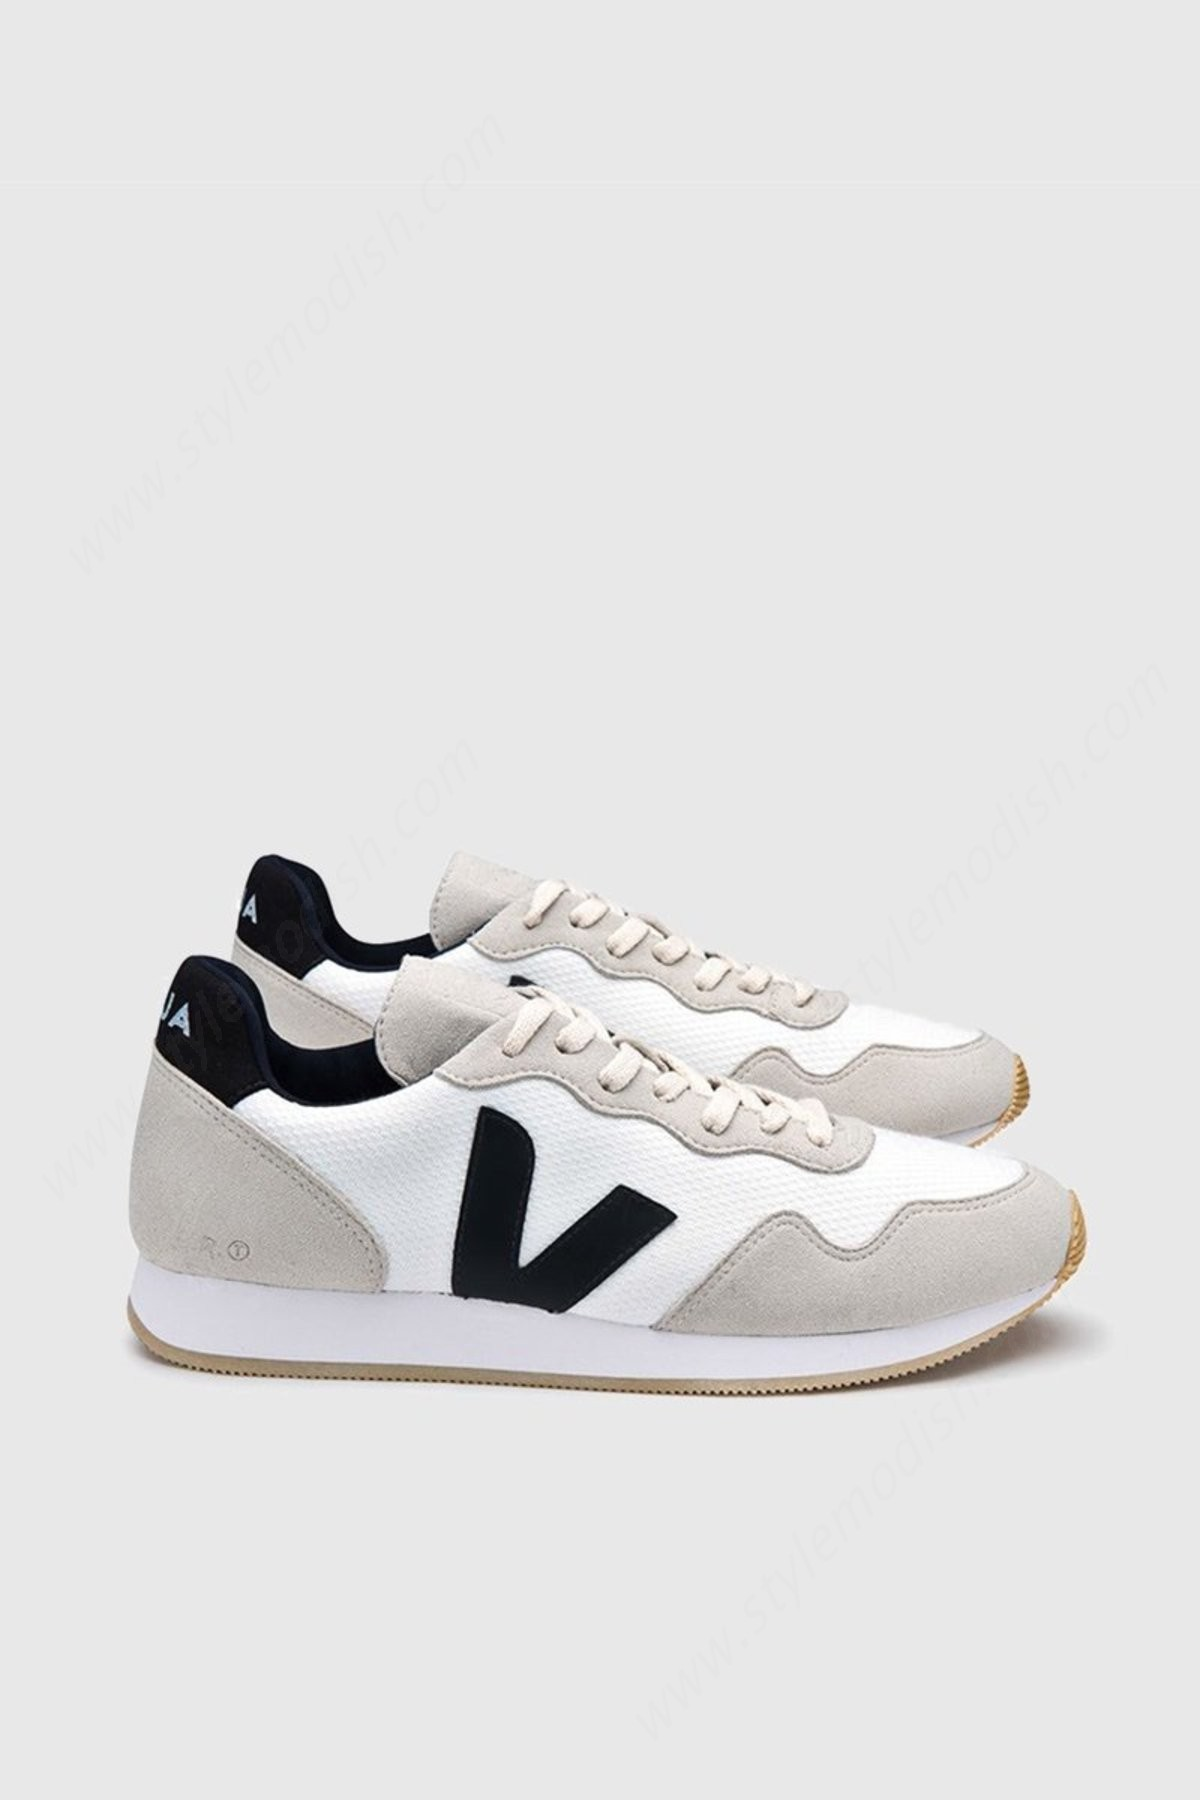 Women's Unisex Veja Sdu Bmesh - White/natural/black Shoe - Women's Unisex Veja Sdu Bmesh - White/natural/black Shoe